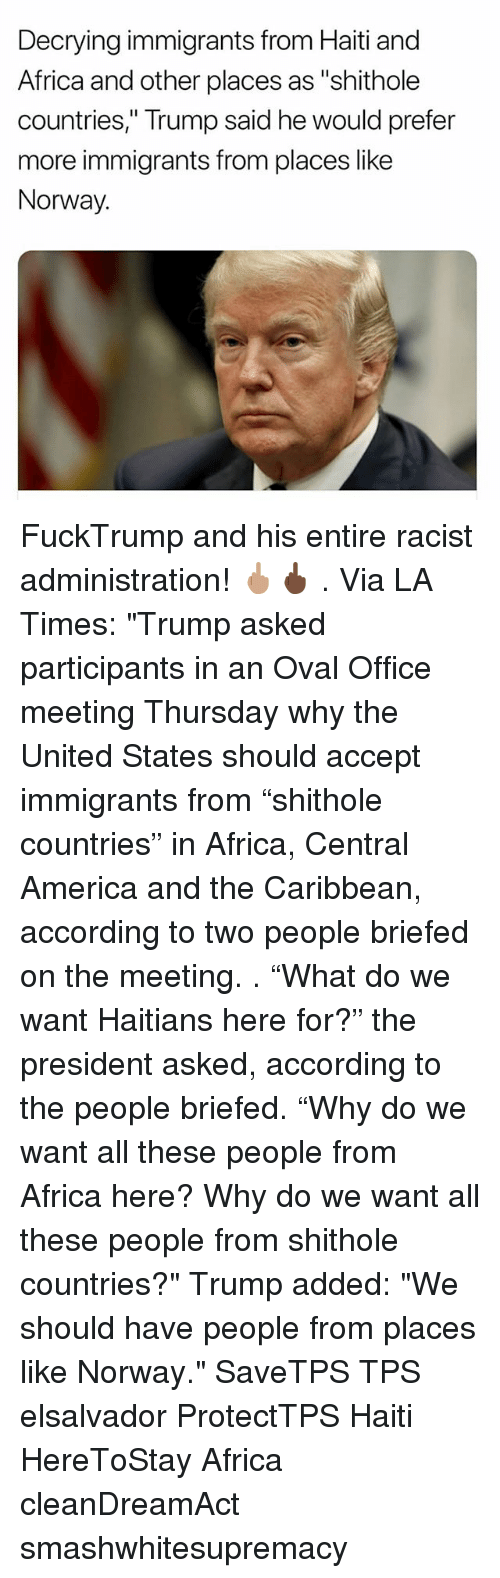 """oval office: Decrying immigrants from Haiti and  Africa and other places as """"shithole  countries,"""" Trump said he would prefer  more immigrants from places like  Norway. FuckTrump and his entire racist administration! 🖕🏽🖕🏿 . Via LA Times: """"Trump asked participants in an Oval Office meeting Thursday why the United States should accept immigrants from """"shithole countries"""" in Africa, Central America and the Caribbean, according to two people briefed on the meeting. . """"What do we want Haitians here for?"""" the president asked, according to the people briefed. """"Why do we want all these people from Africa here? Why do we want all these people from shithole countries?"""" Trump added: """"We should have people from places like Norway."""" SaveTPS TPS elsalvador ProtectTPS Haiti HereToStay Africa cleanDreamAct smashwhitesupremacy"""